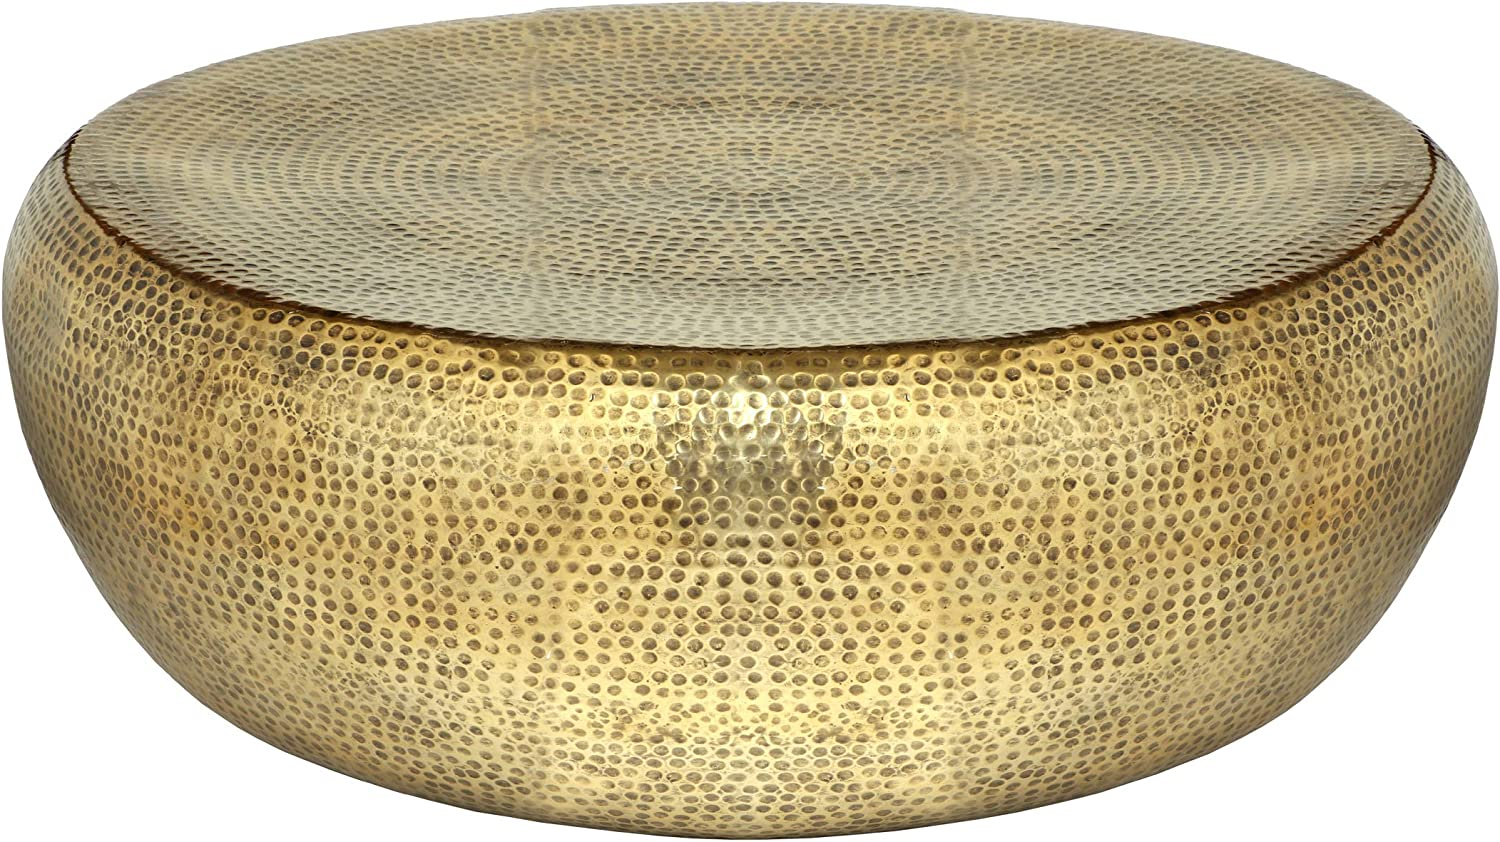 Odelette Modern Round Hammered Aluminum Go Coffee Antique Outlet sale Safety and trust feature Table